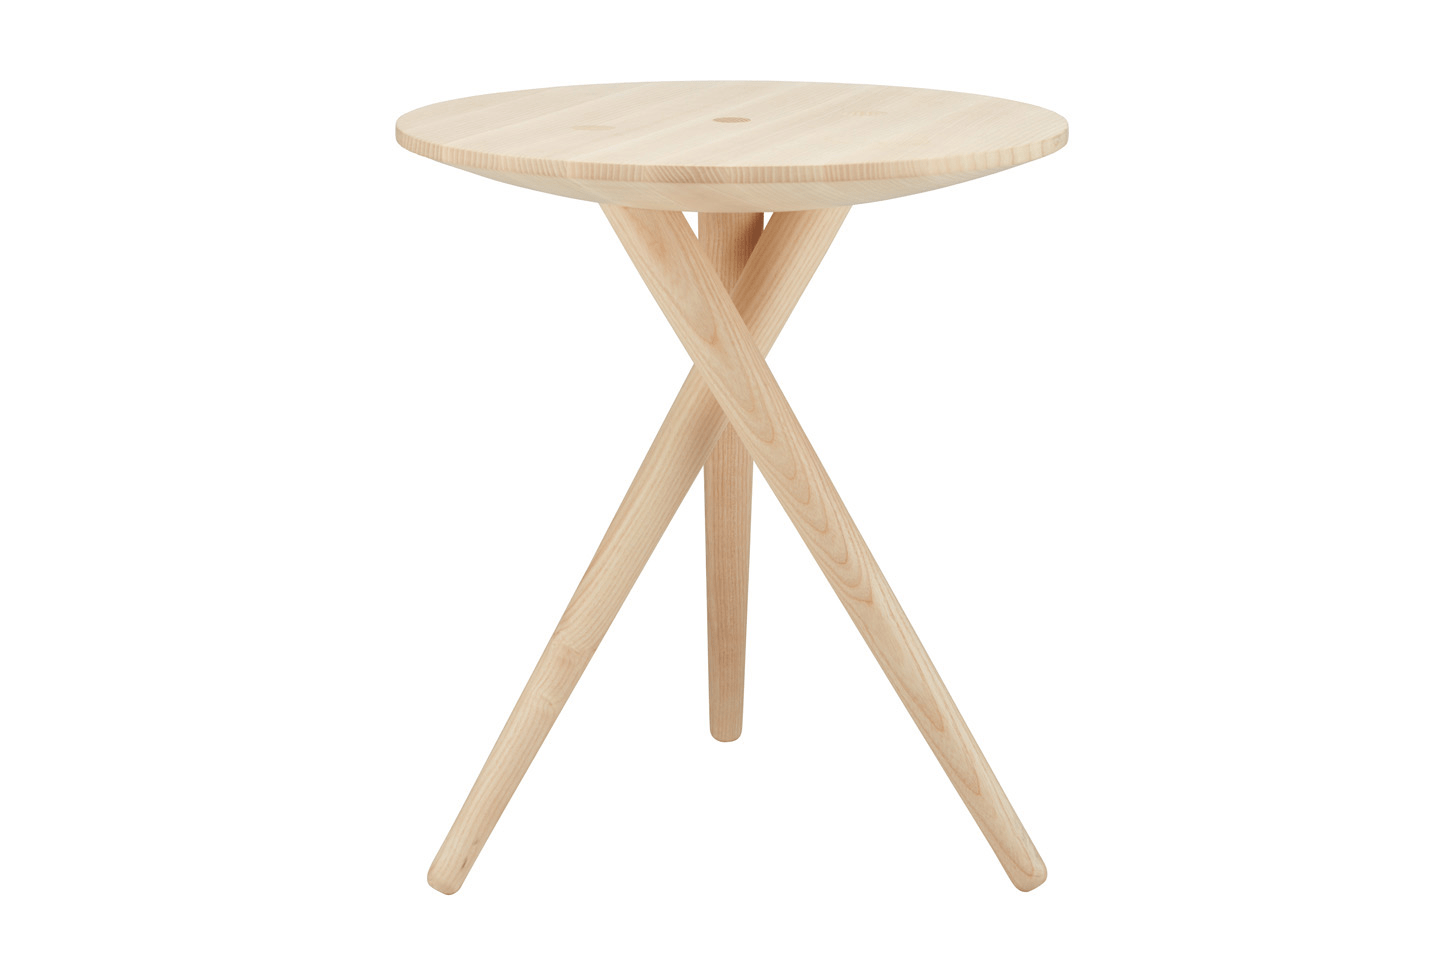 Three Legs Frame Side Table in Solid Wood